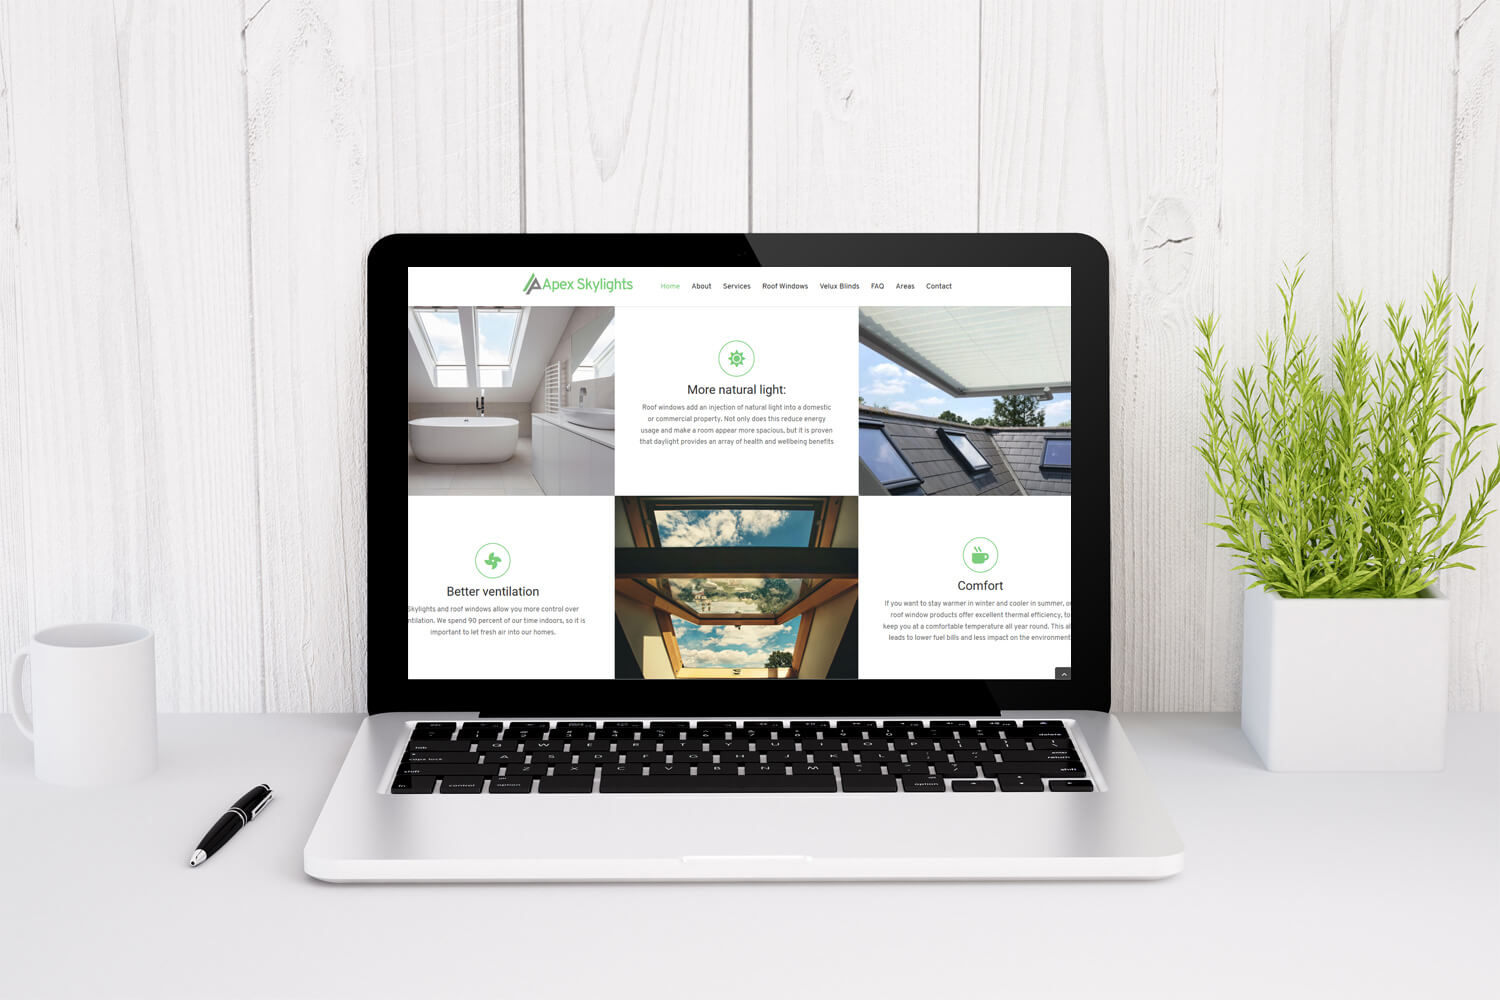 JJ Solutions designed and optimised the Apex Skylight website